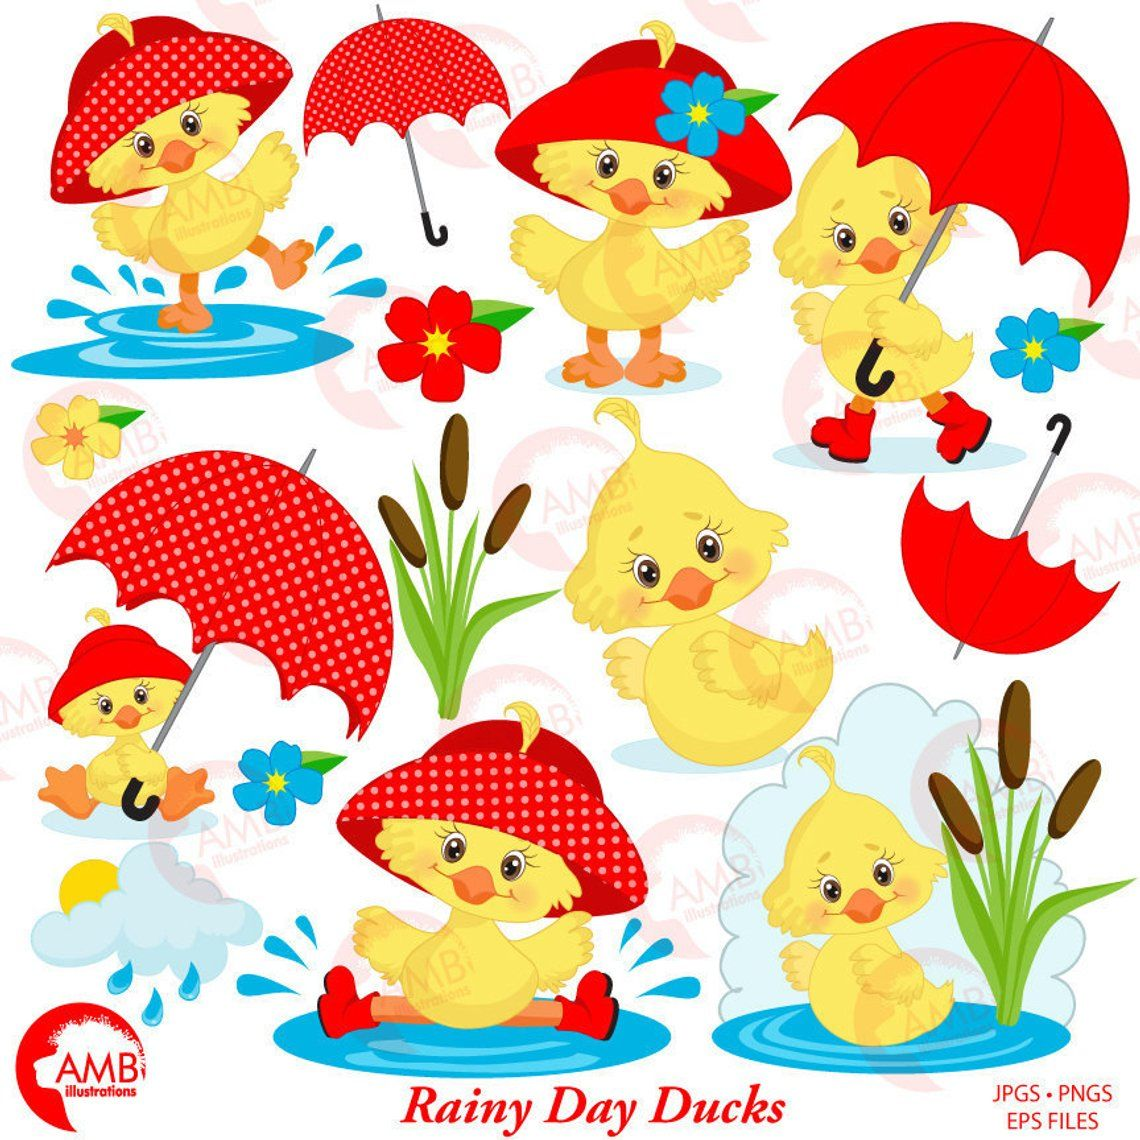 14 cliparts for free. Download Duckling clipart kawaii umbrella and.